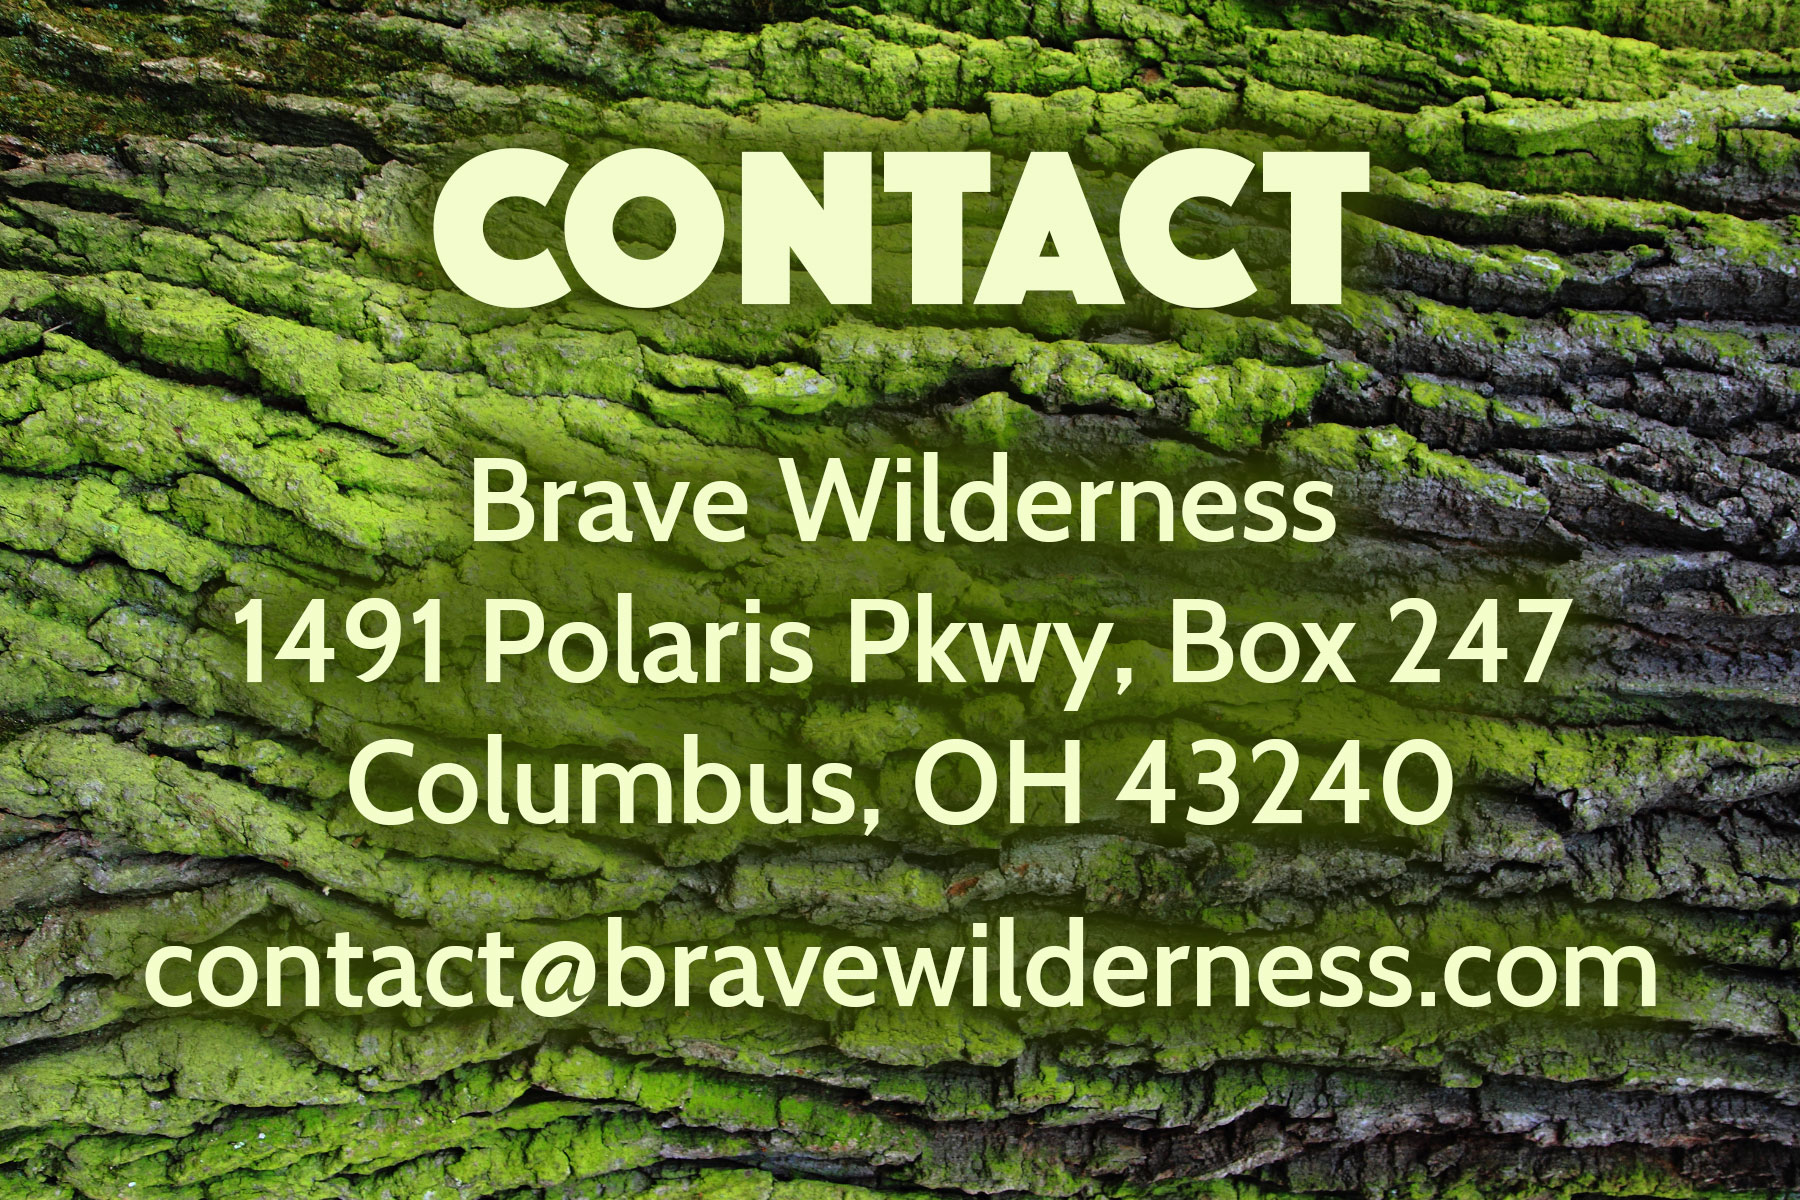 Contact Brave Wilderness